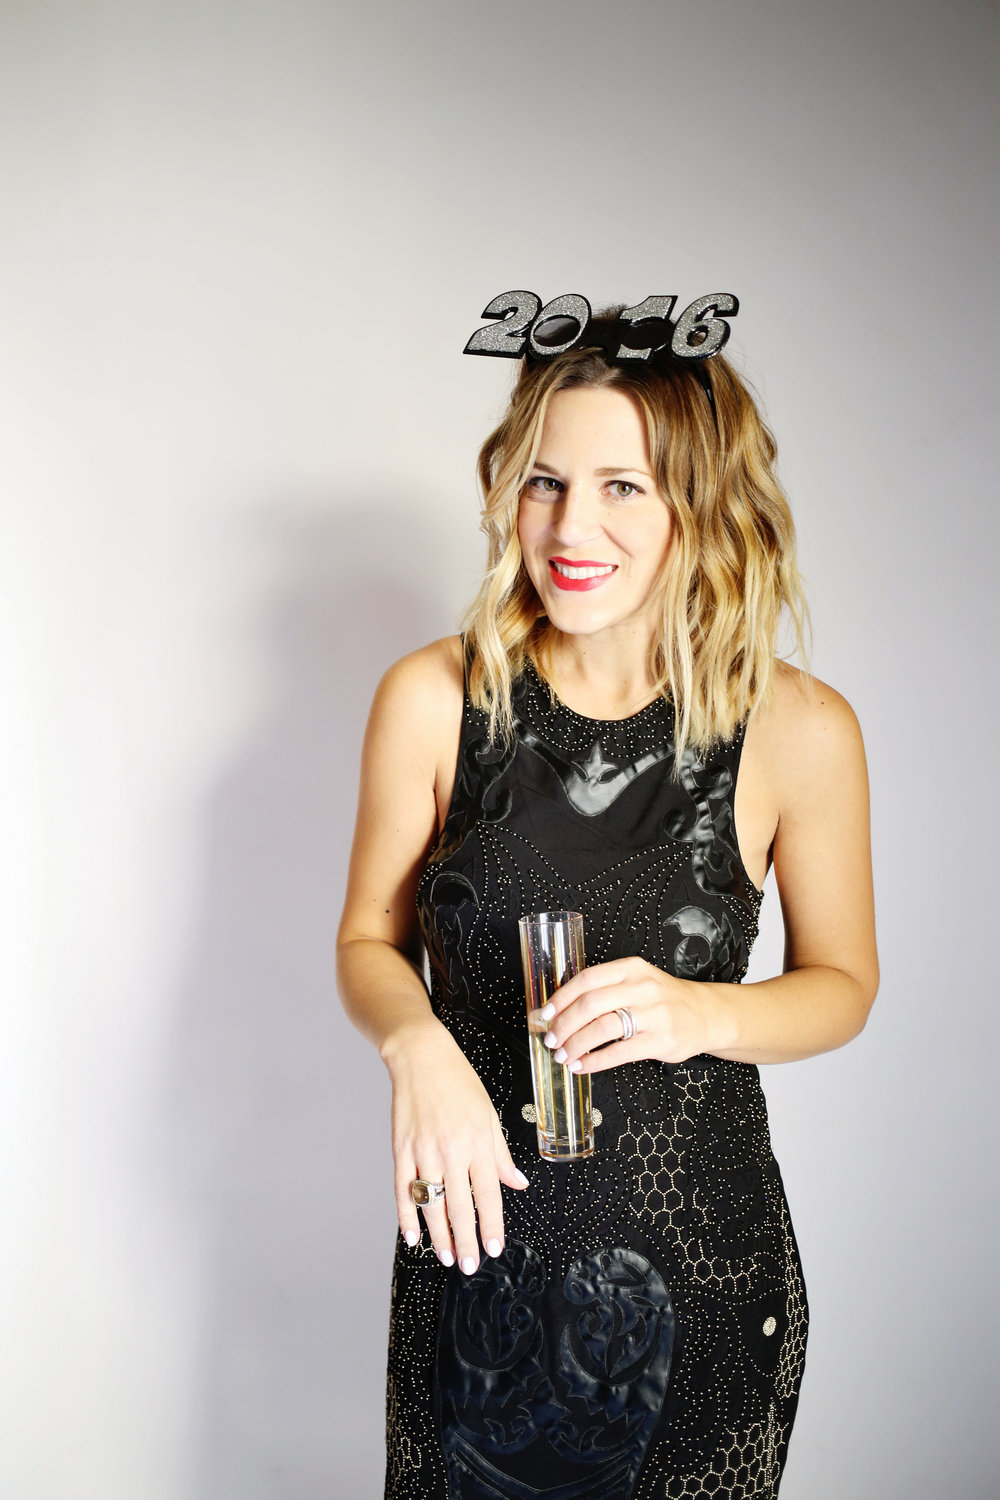 New years eve outfit by yoana baraschi 12.jpg